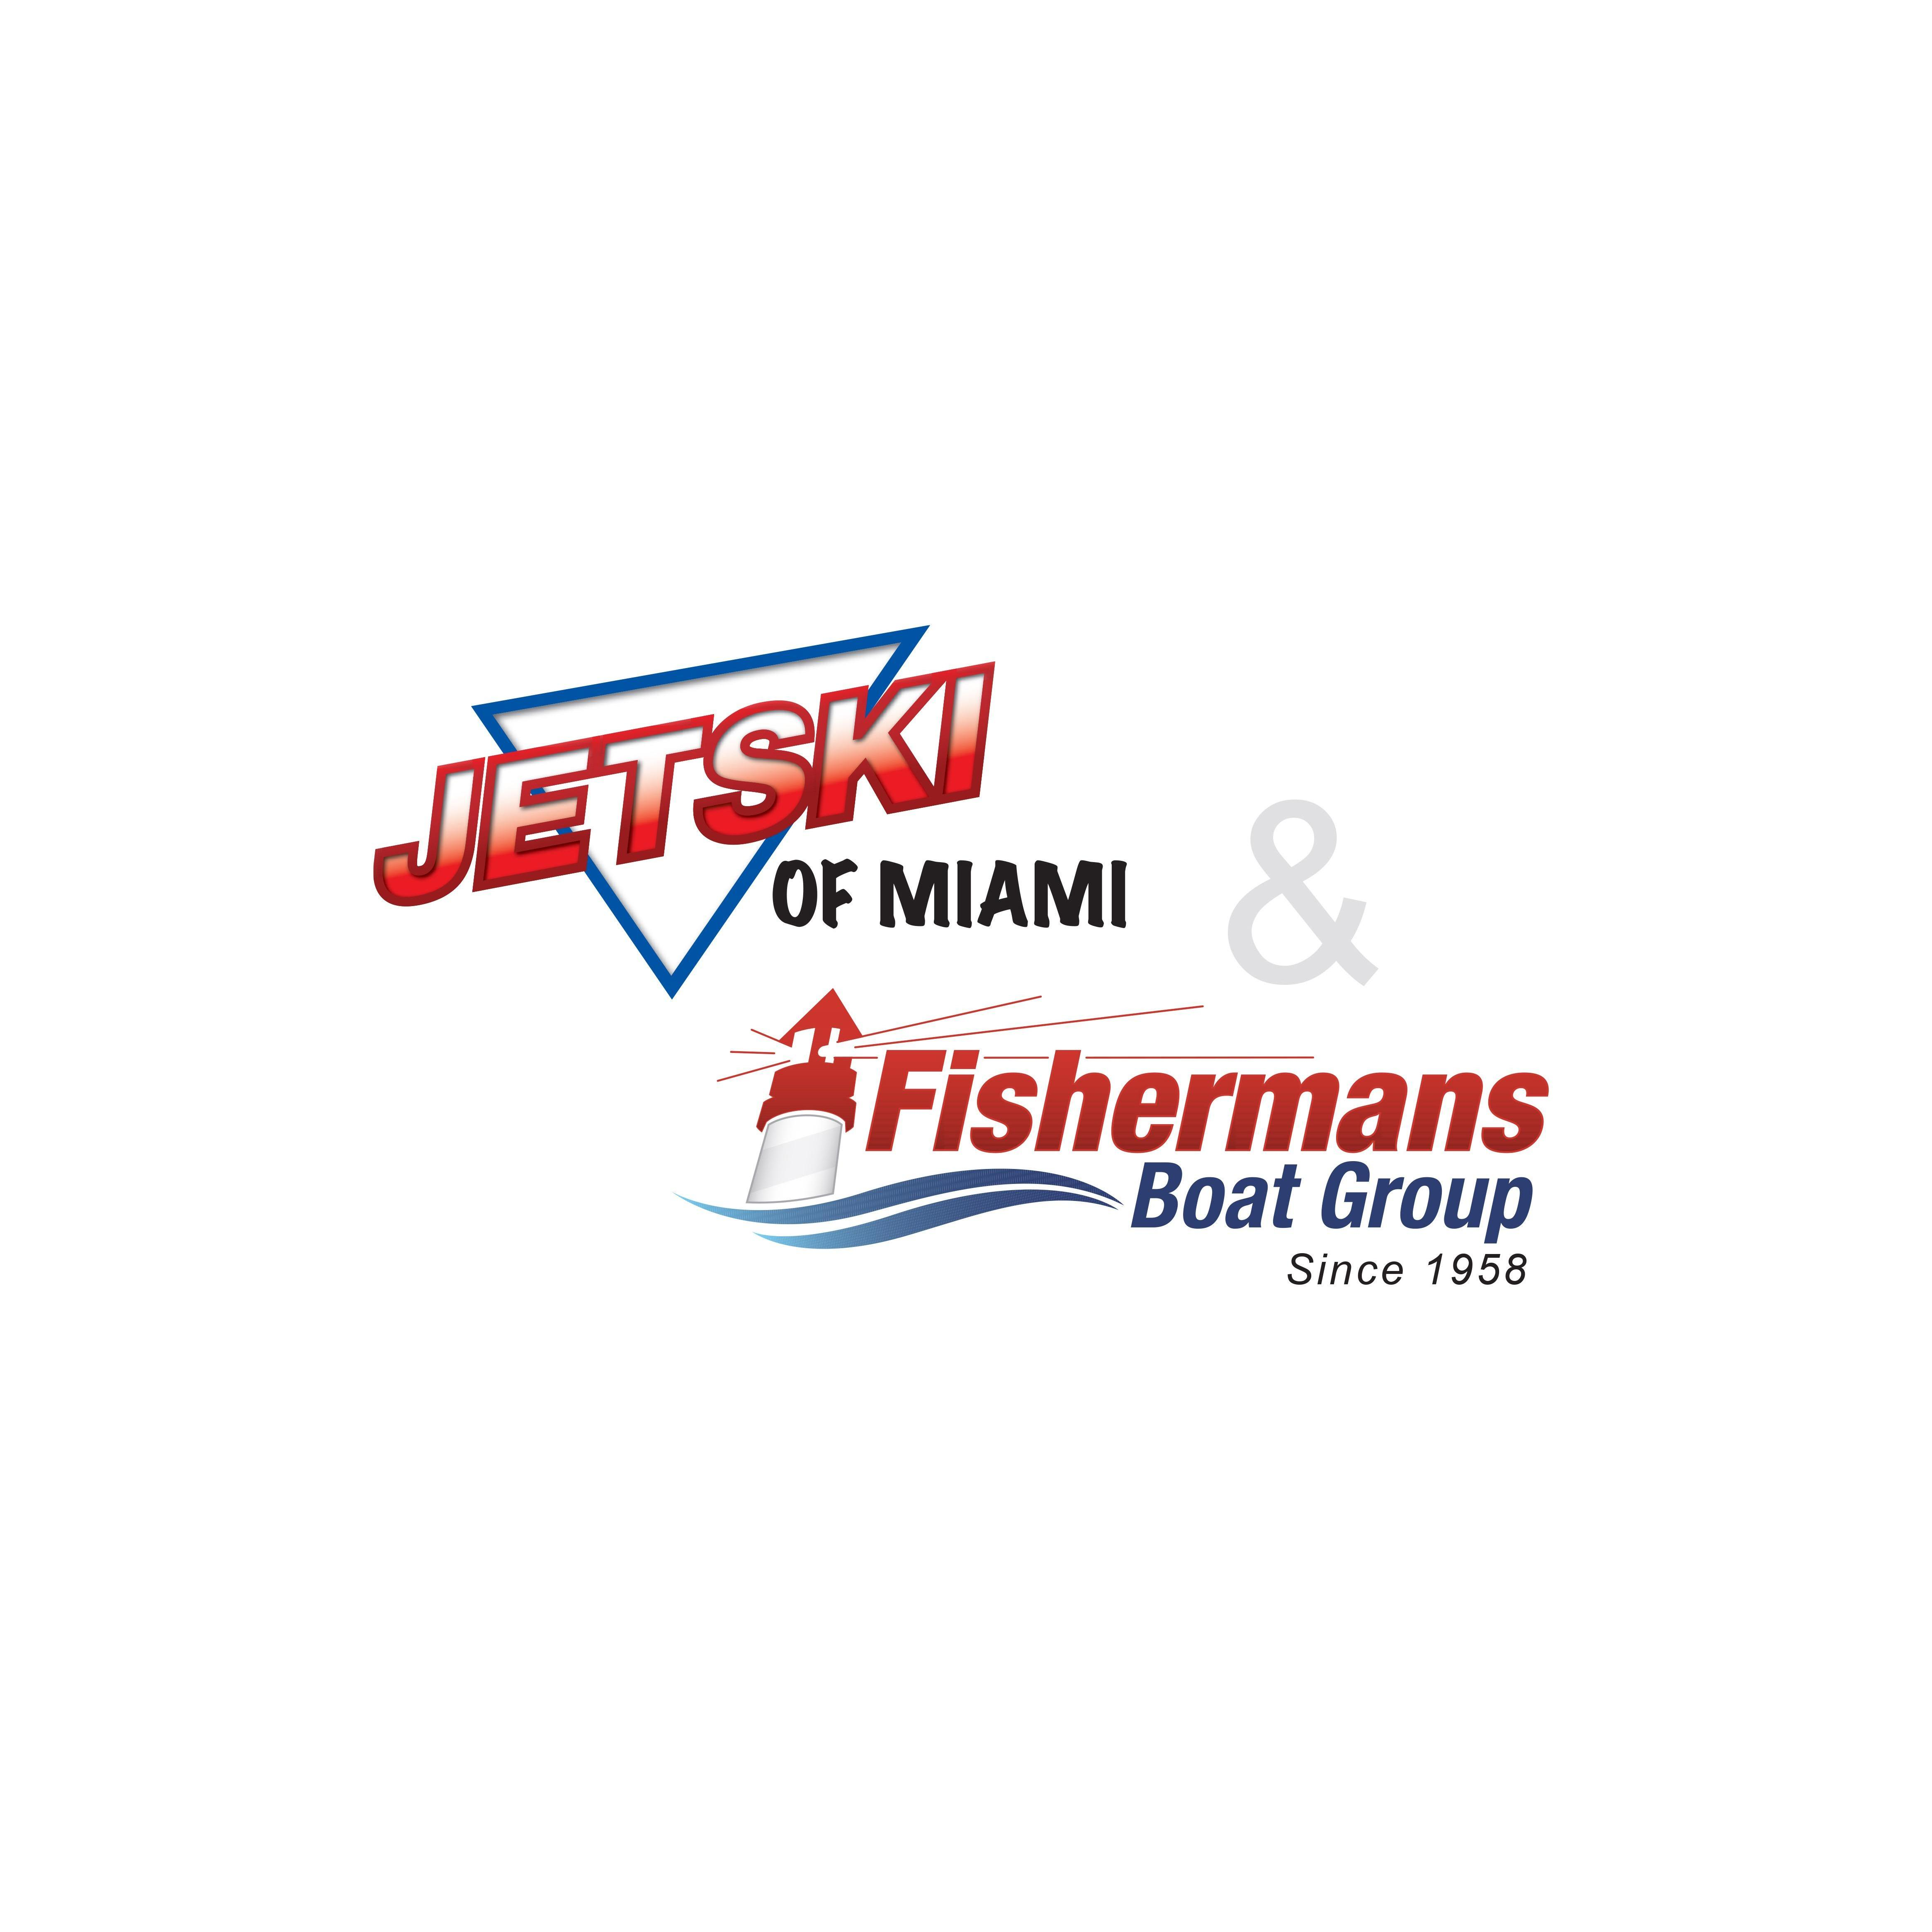 Jet ski of miami fisherman 39 s boat group coupons near me for Yamaha outboard mechanic near me